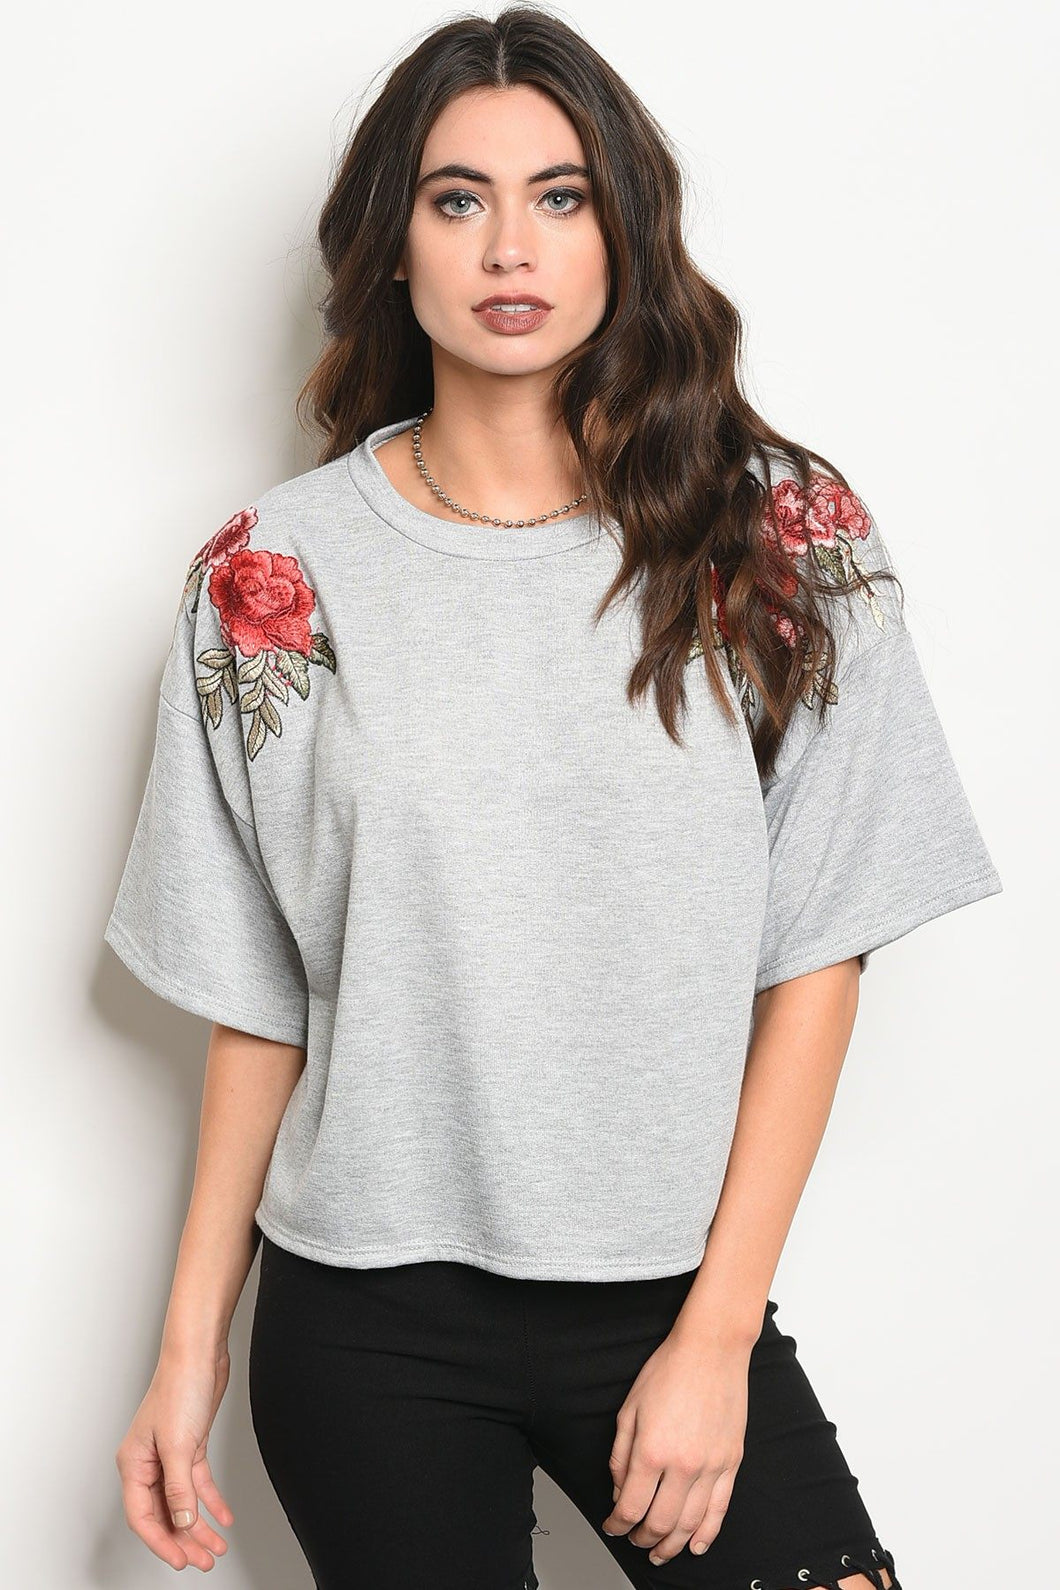 Ladies fashion 3/4 sleeve light weight knit top with a crew neckline and floral patch details